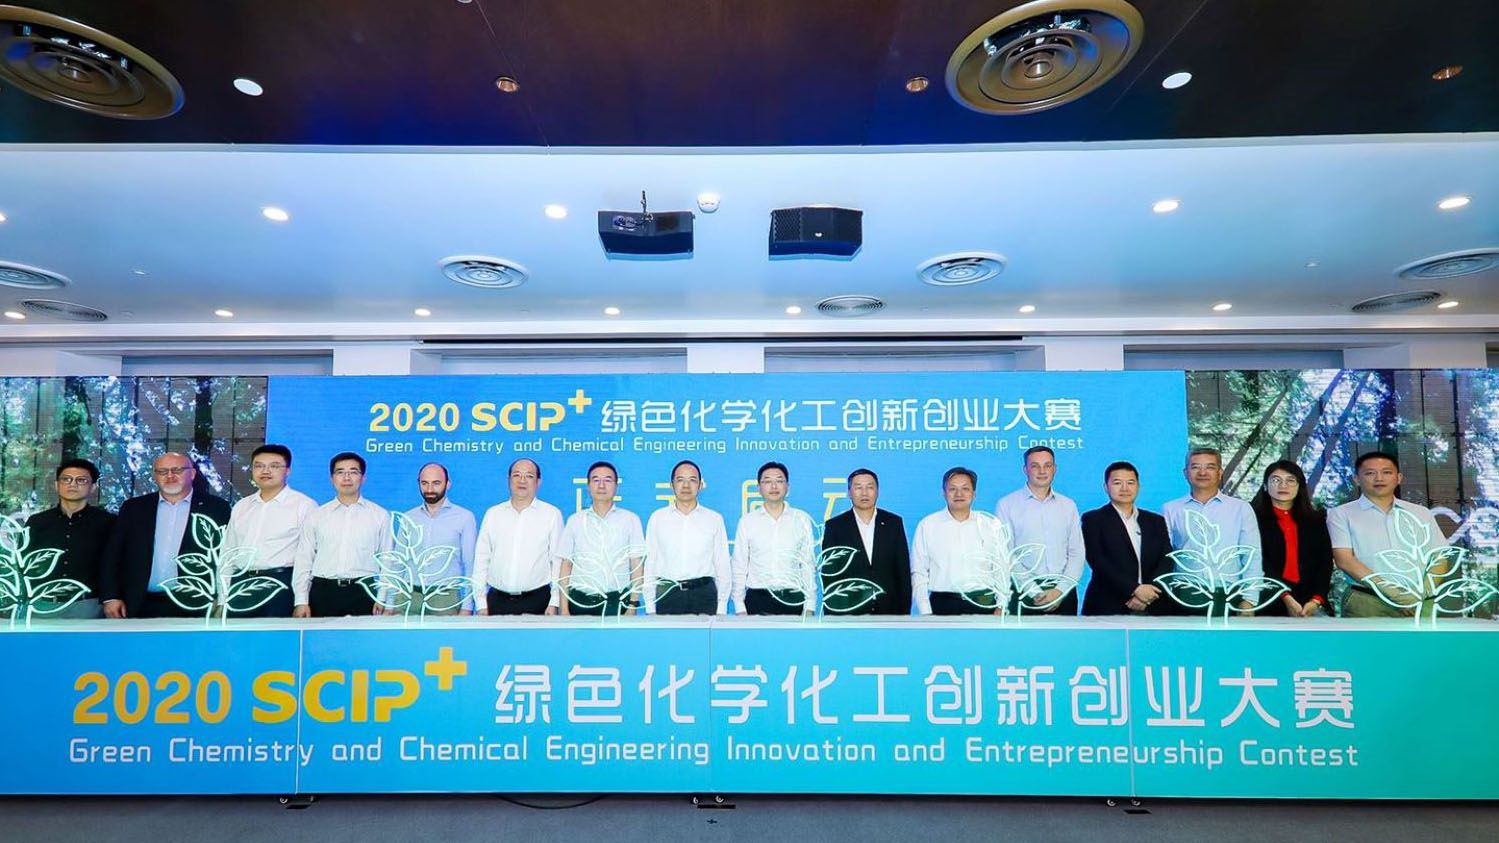 SCIP innovation 2020